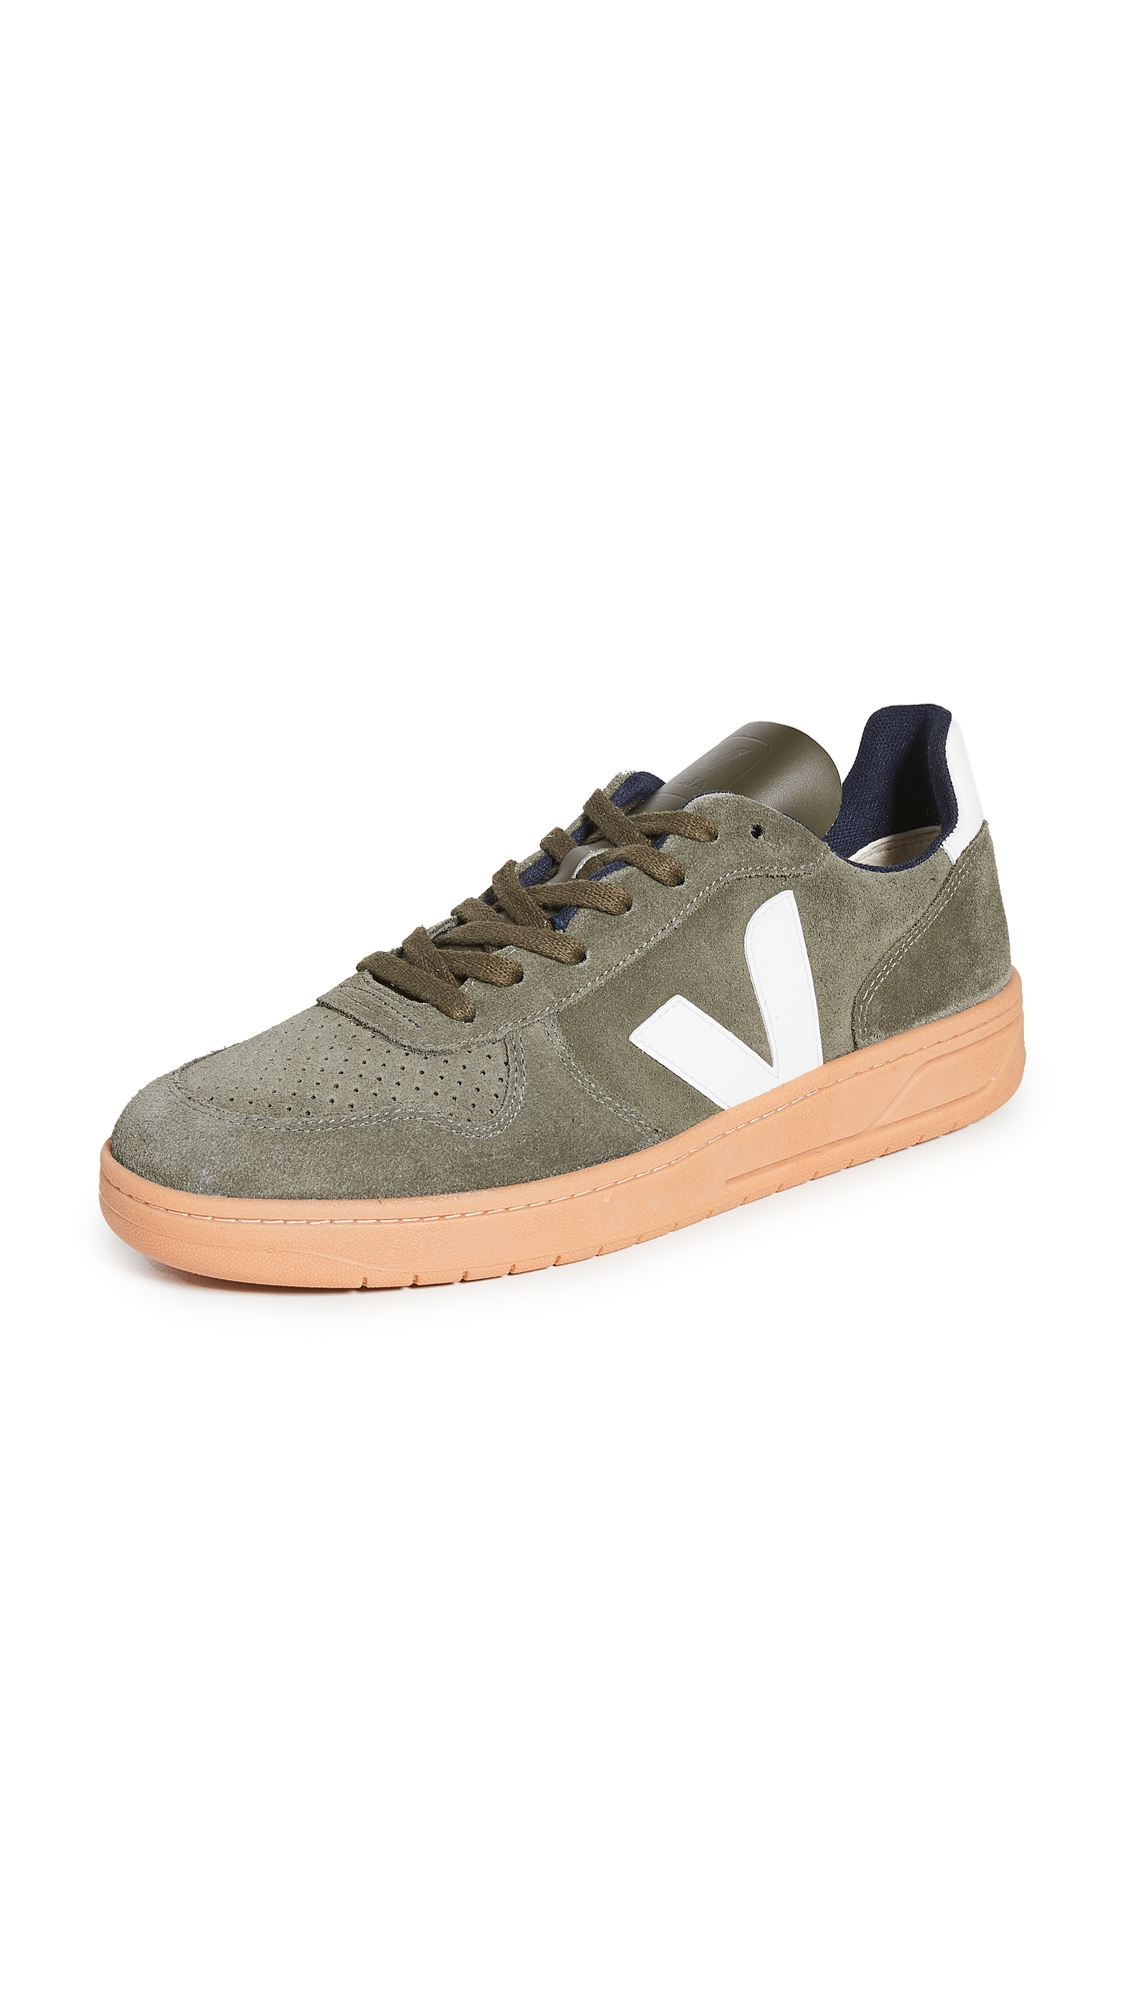 V-10 Suede Gum Sole Sneakers